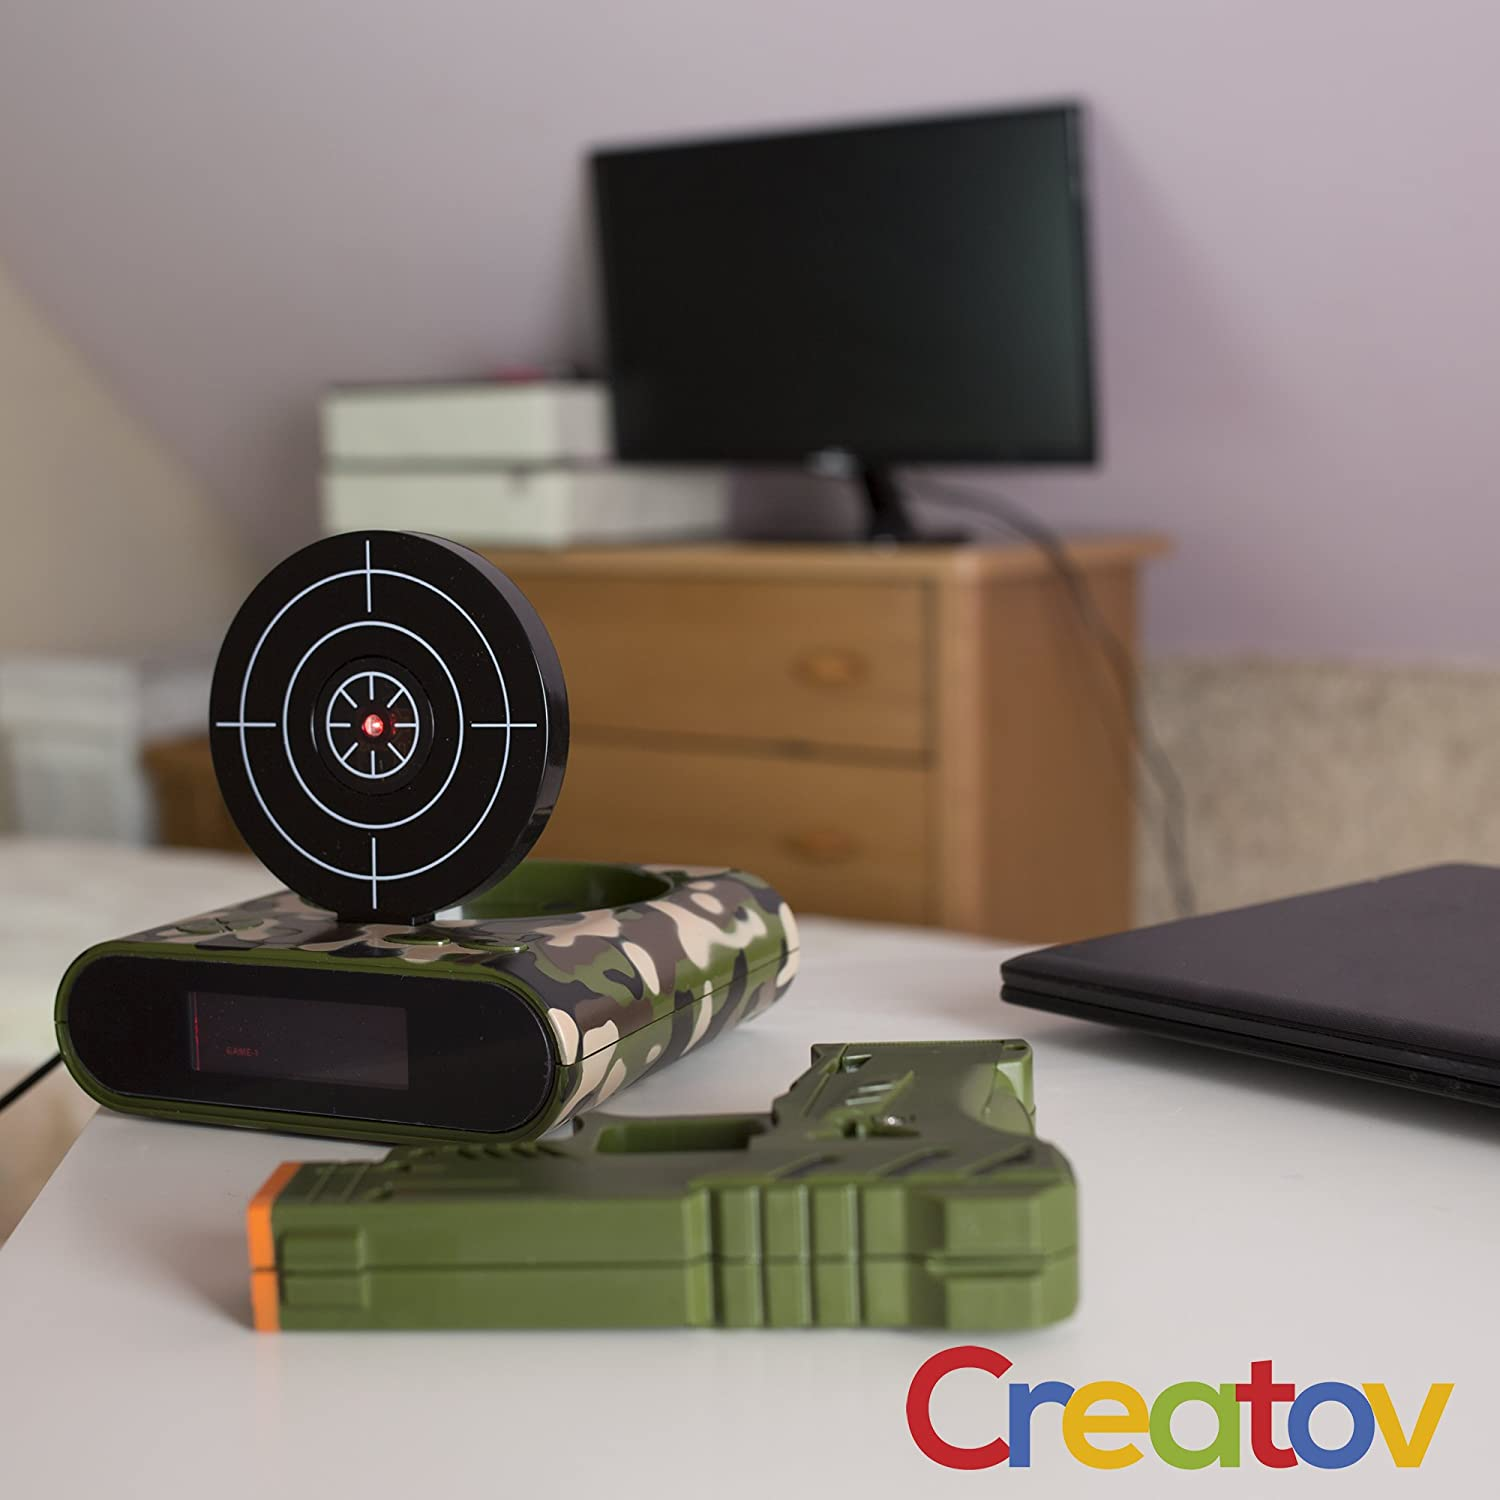 Target Alarm Clock With Gun Infrared And Memo Board Flashing Light Circuit Realistic Sound Effects 08 Mw Camouflage By Creatov Sports Outdoors